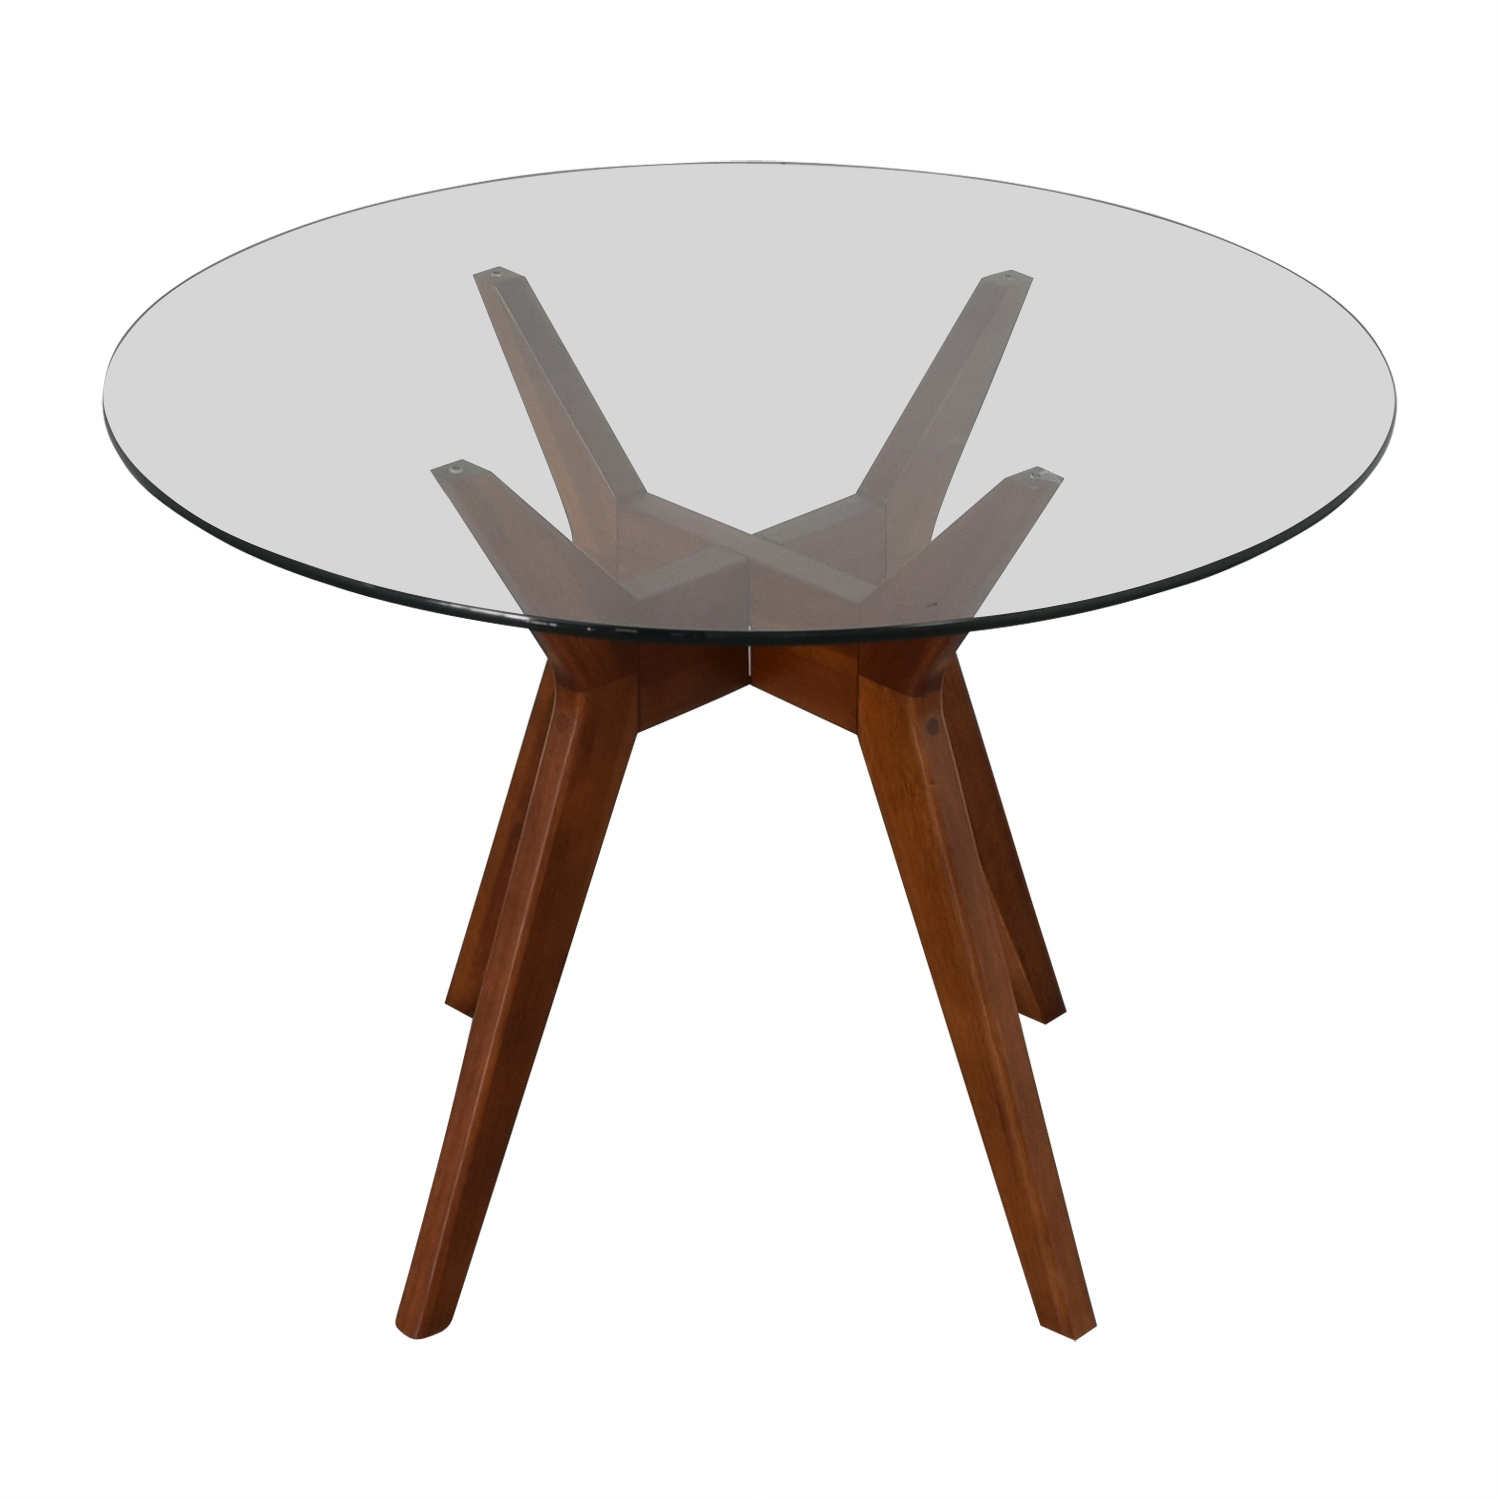 48 Off West Elm West Elm Jensen Round Glass Dining Table Chairs